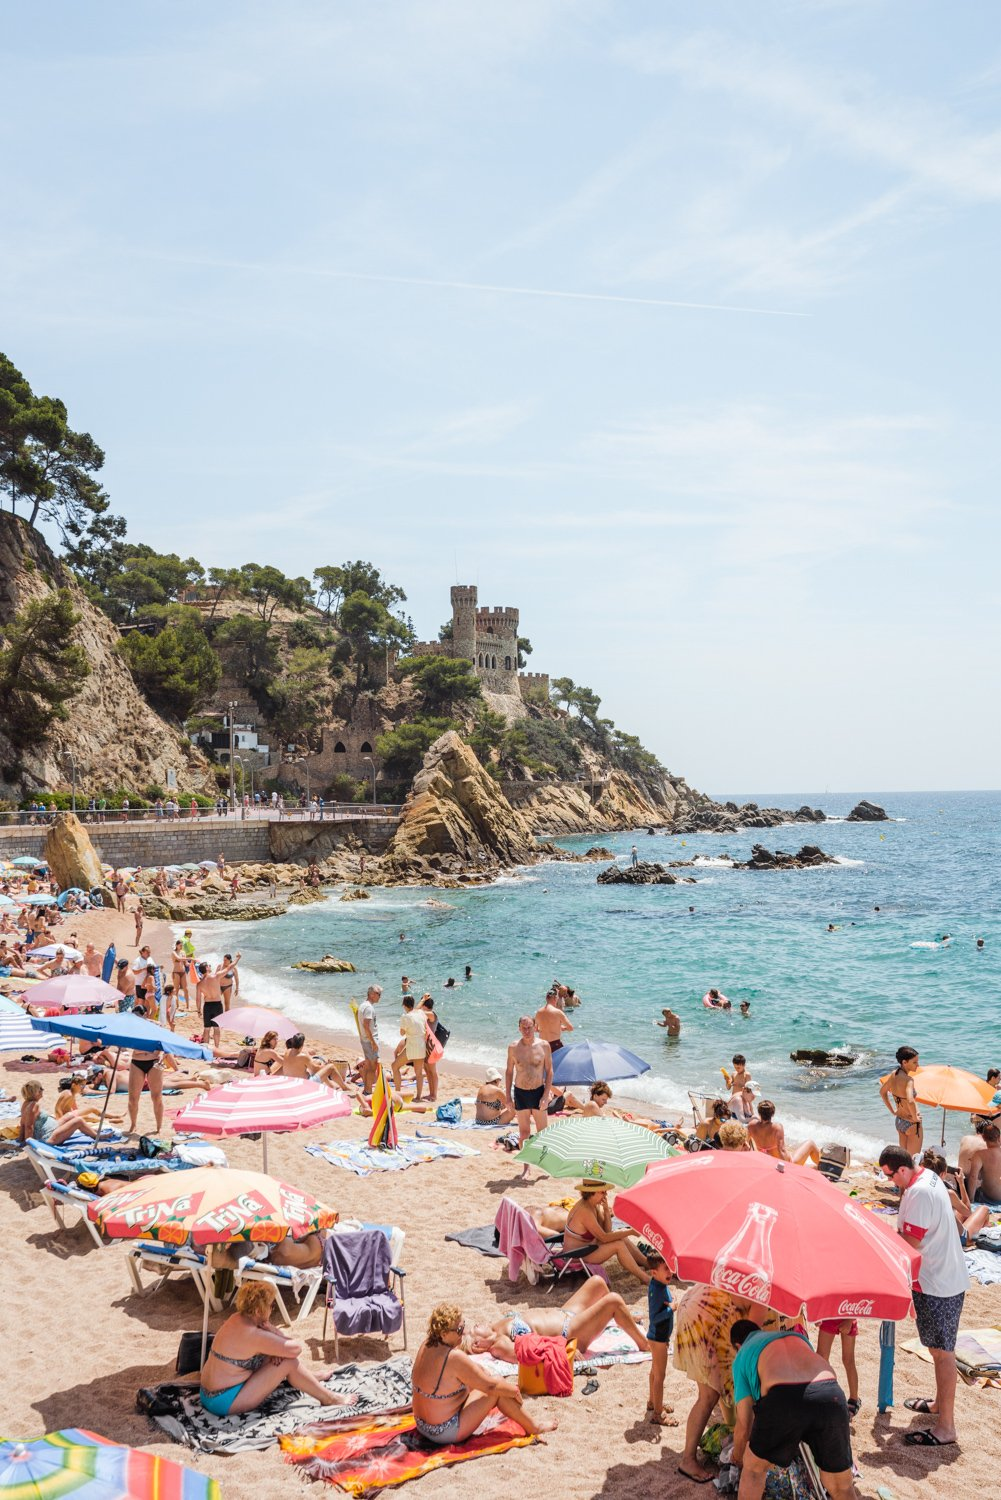 Umbrellas, people on sand and a castle along Costa Brava